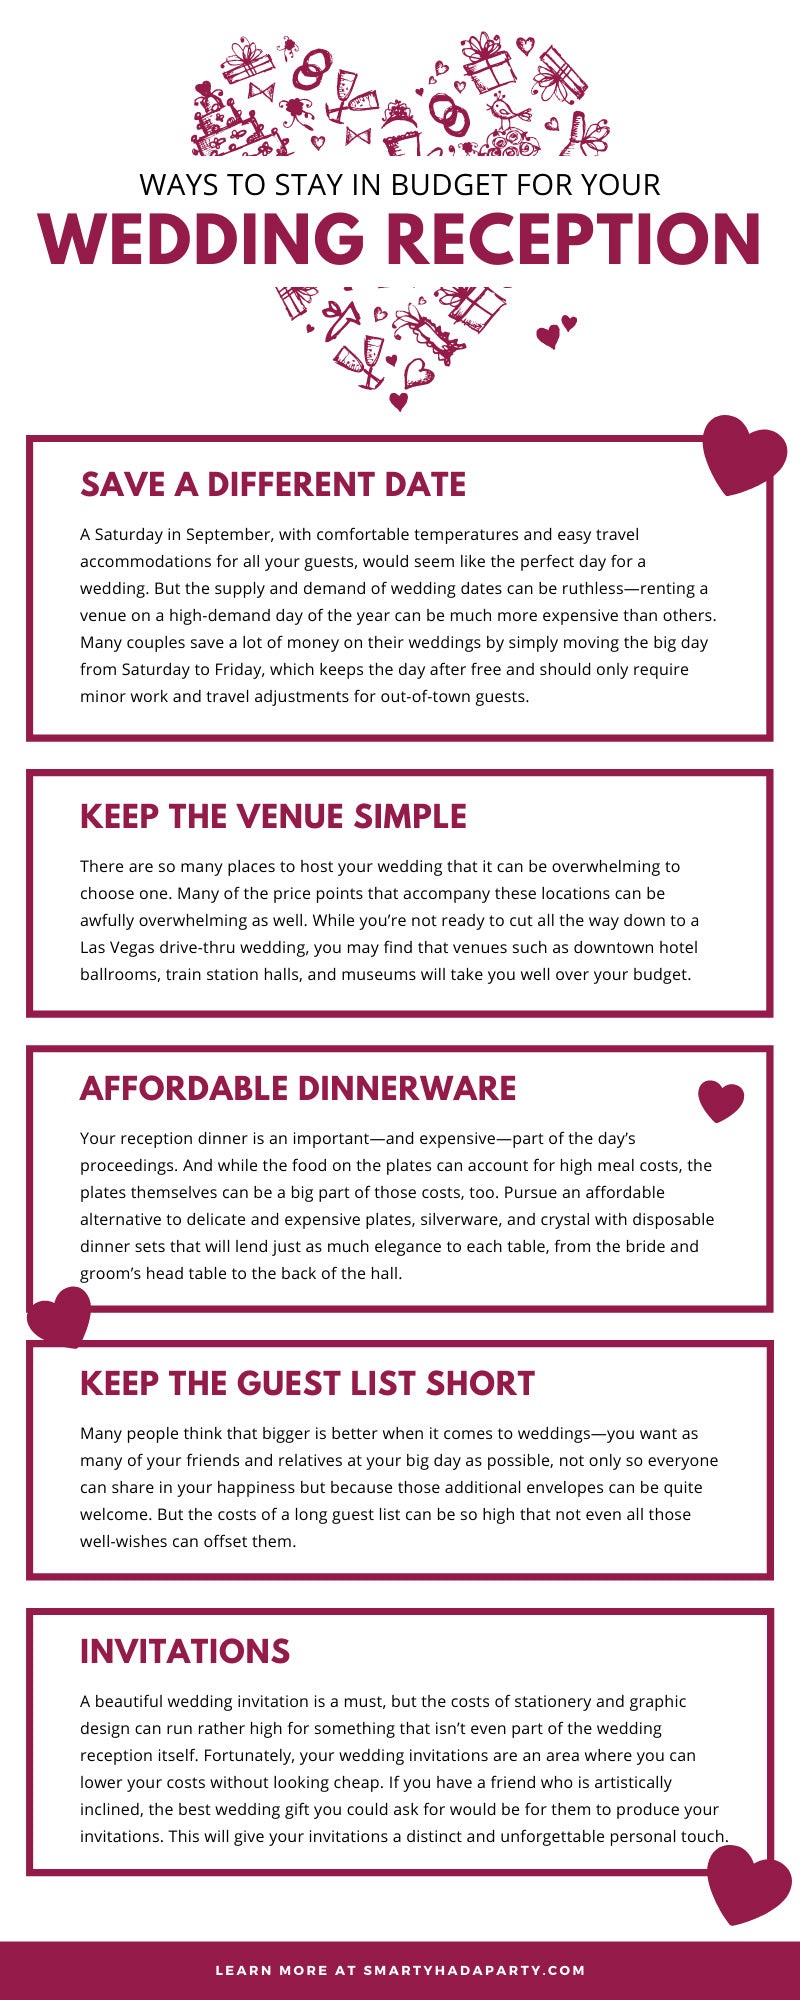 Ways To Stay in Budget for Your Wedding Reception